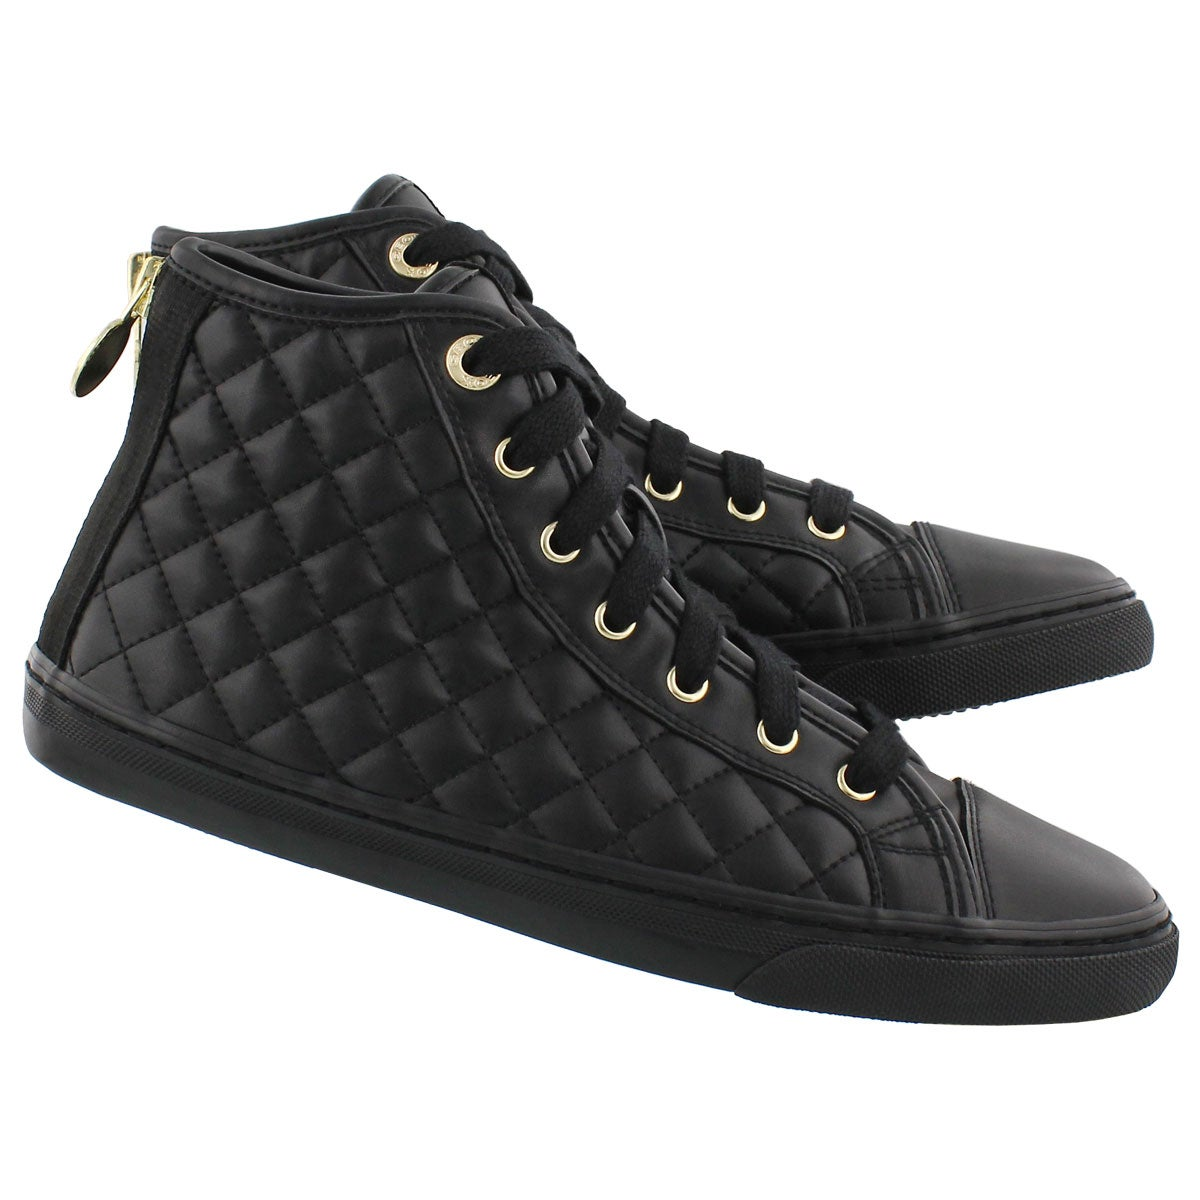 Lds New Club black lace up sneaker